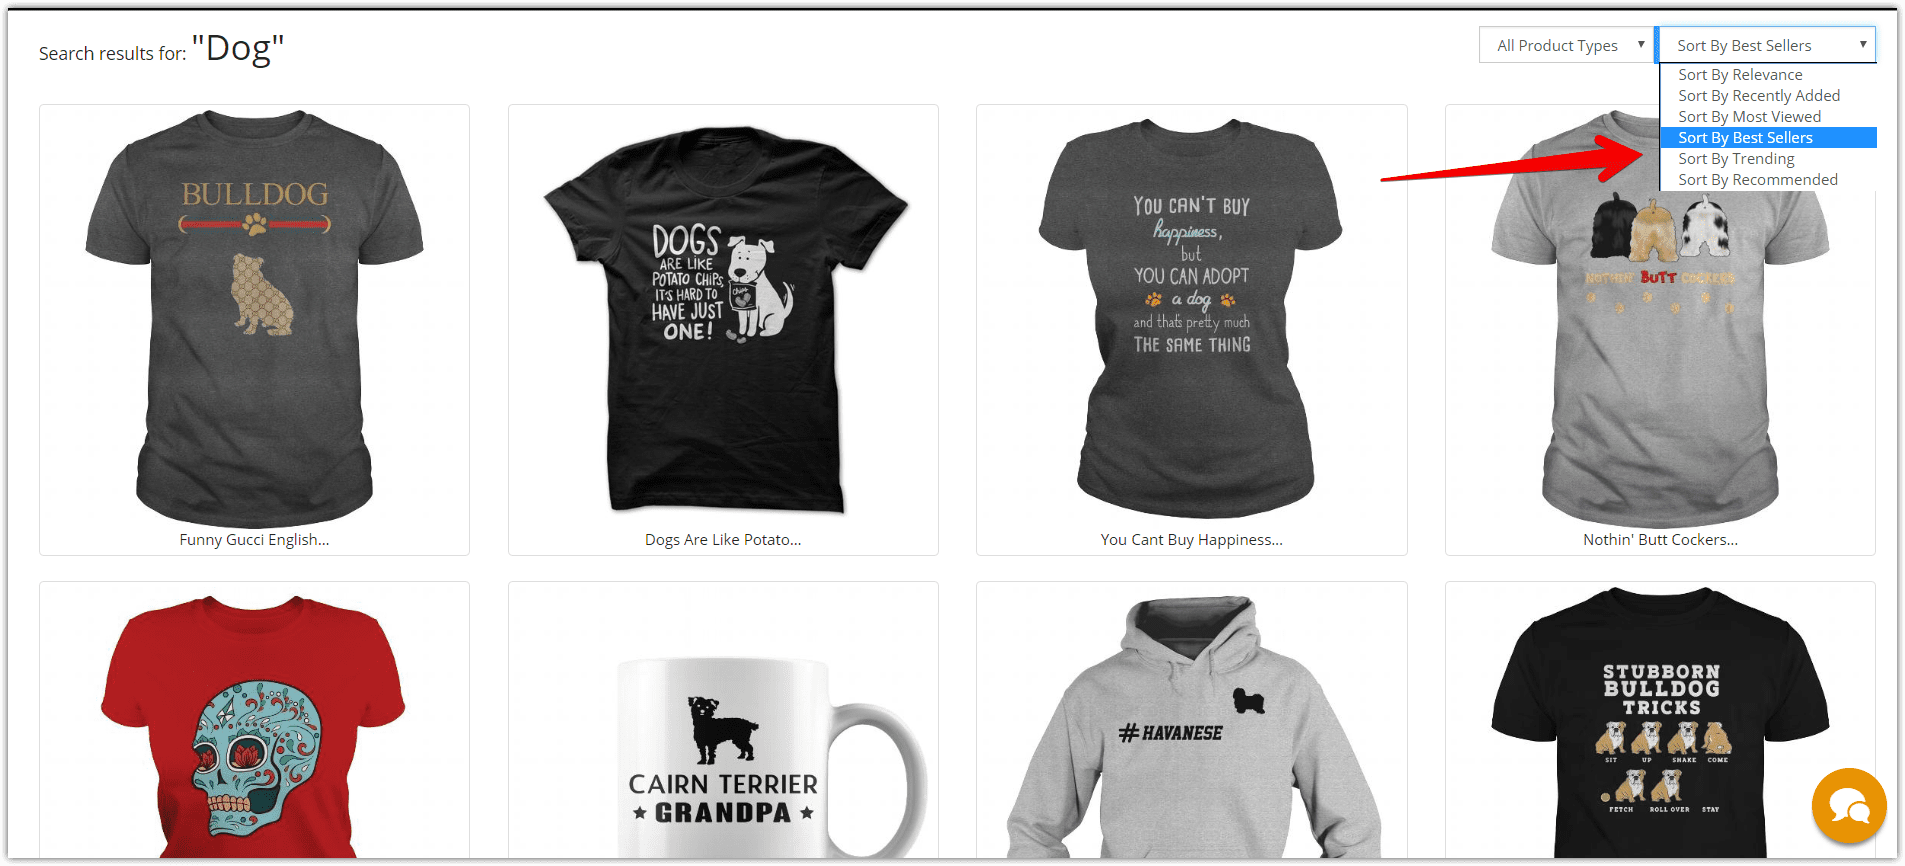 d56c98ee SunFrog is a t-shirt marketplace focusing on just the type of designs we're  looking for. What makes them particularly interesting is their search  filters' ...